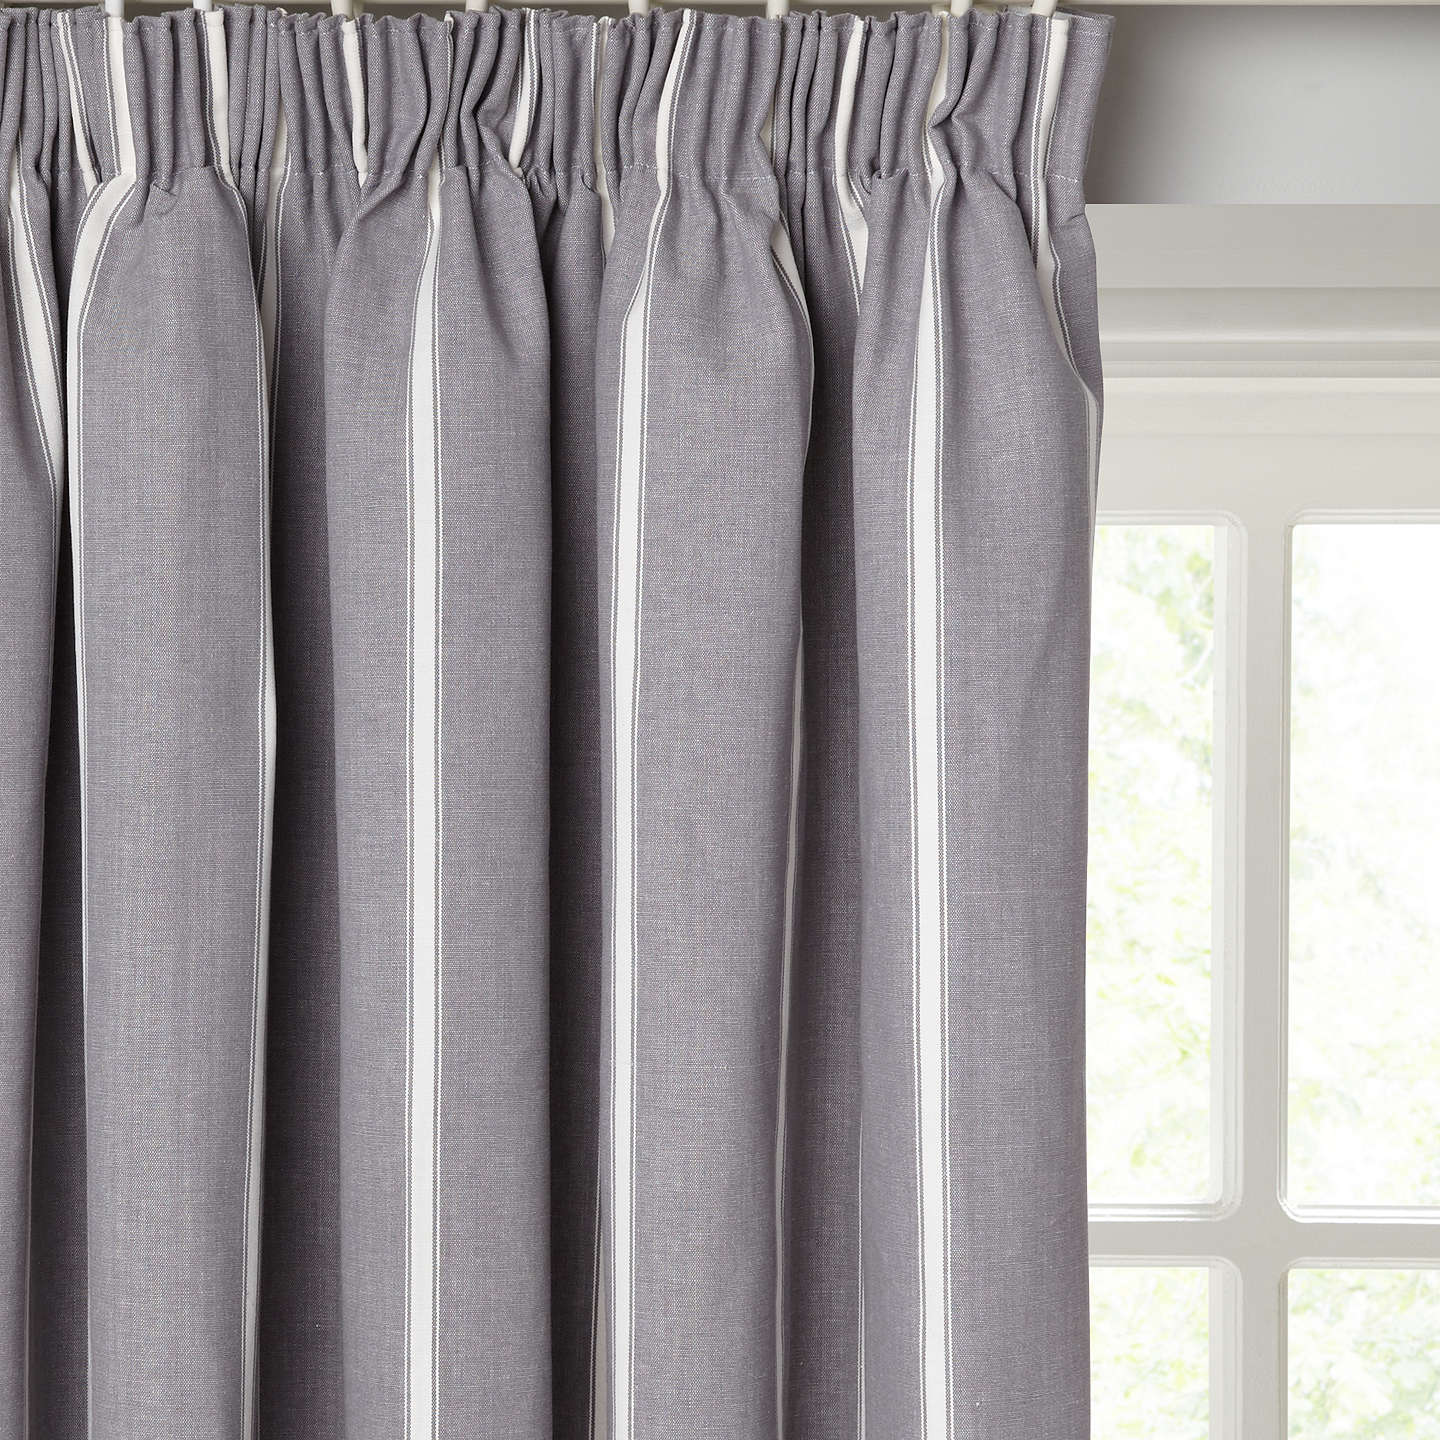 reviews single simone viv curtains panel curtain window blackout thermal wayfair pdx pocket lola striped rod treatments rae